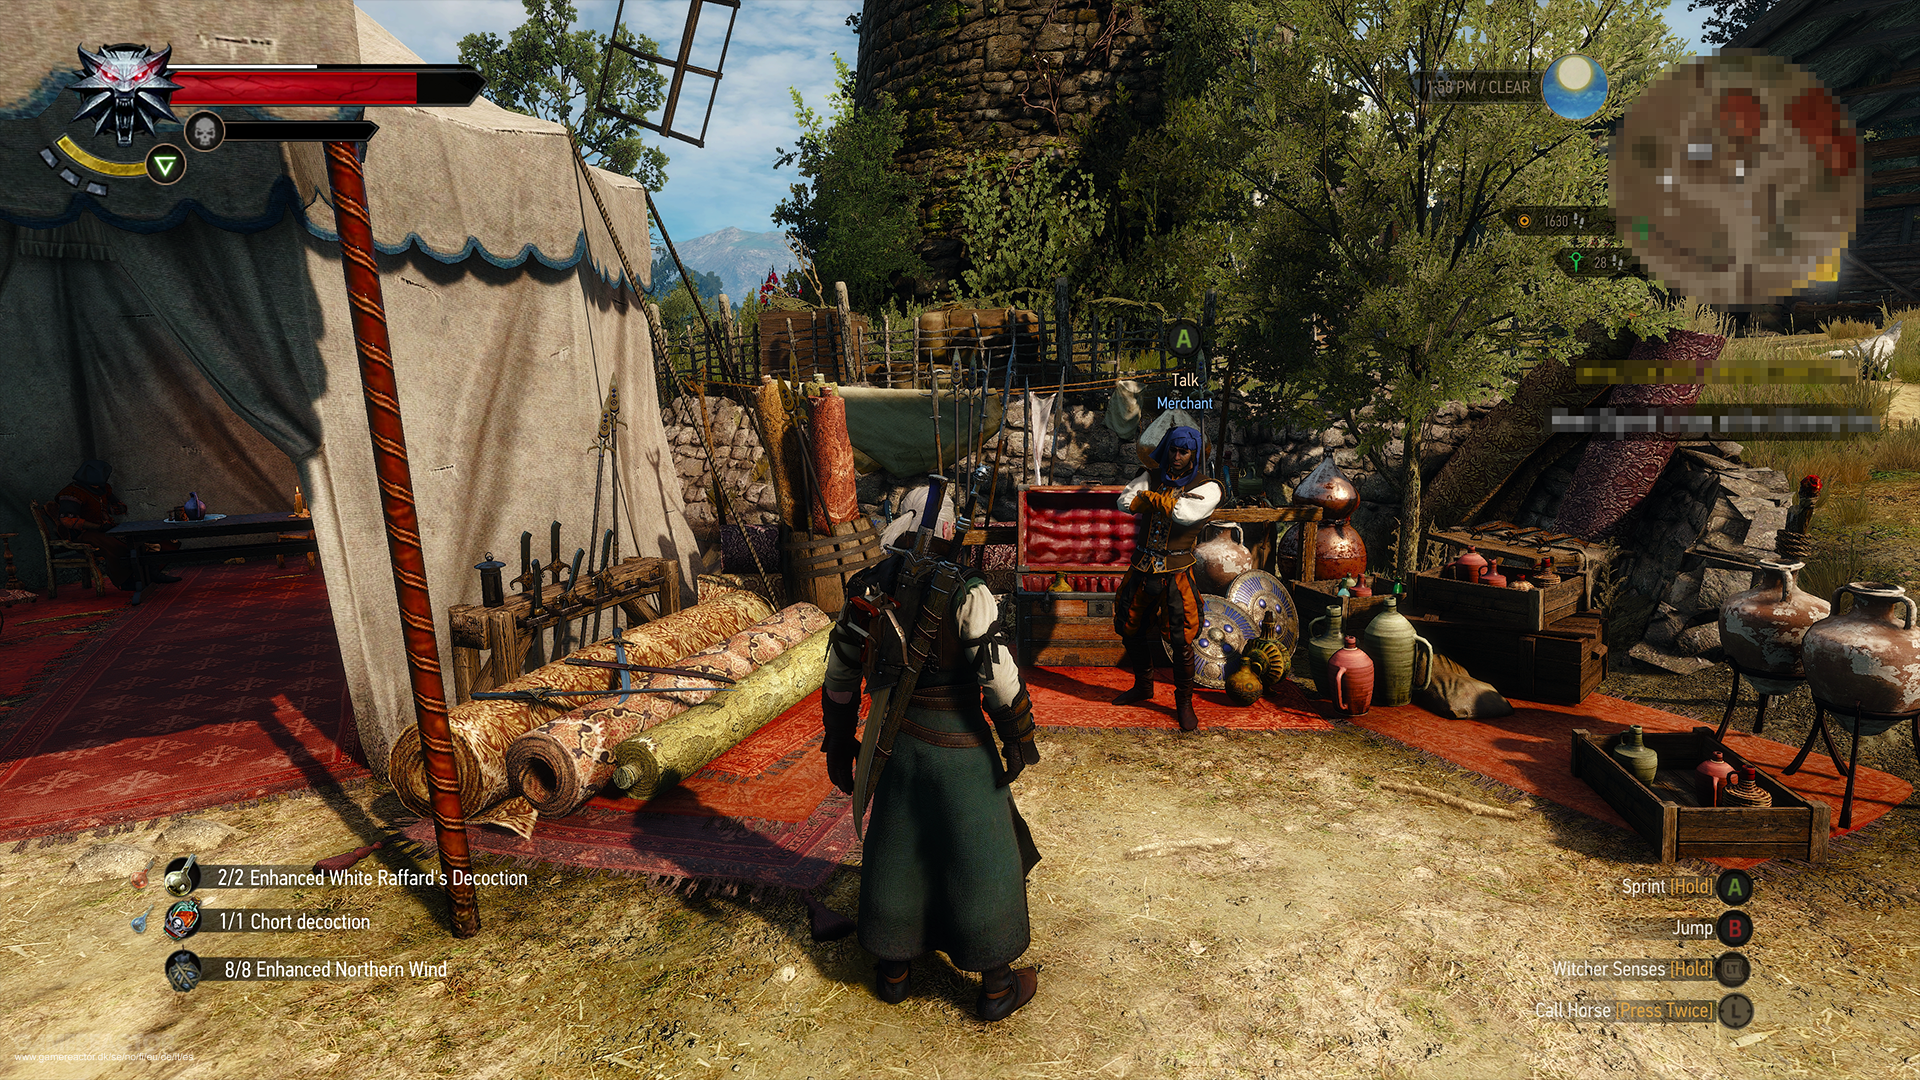 Pictures of The Witcher 3: Hearts of Stone 5/9